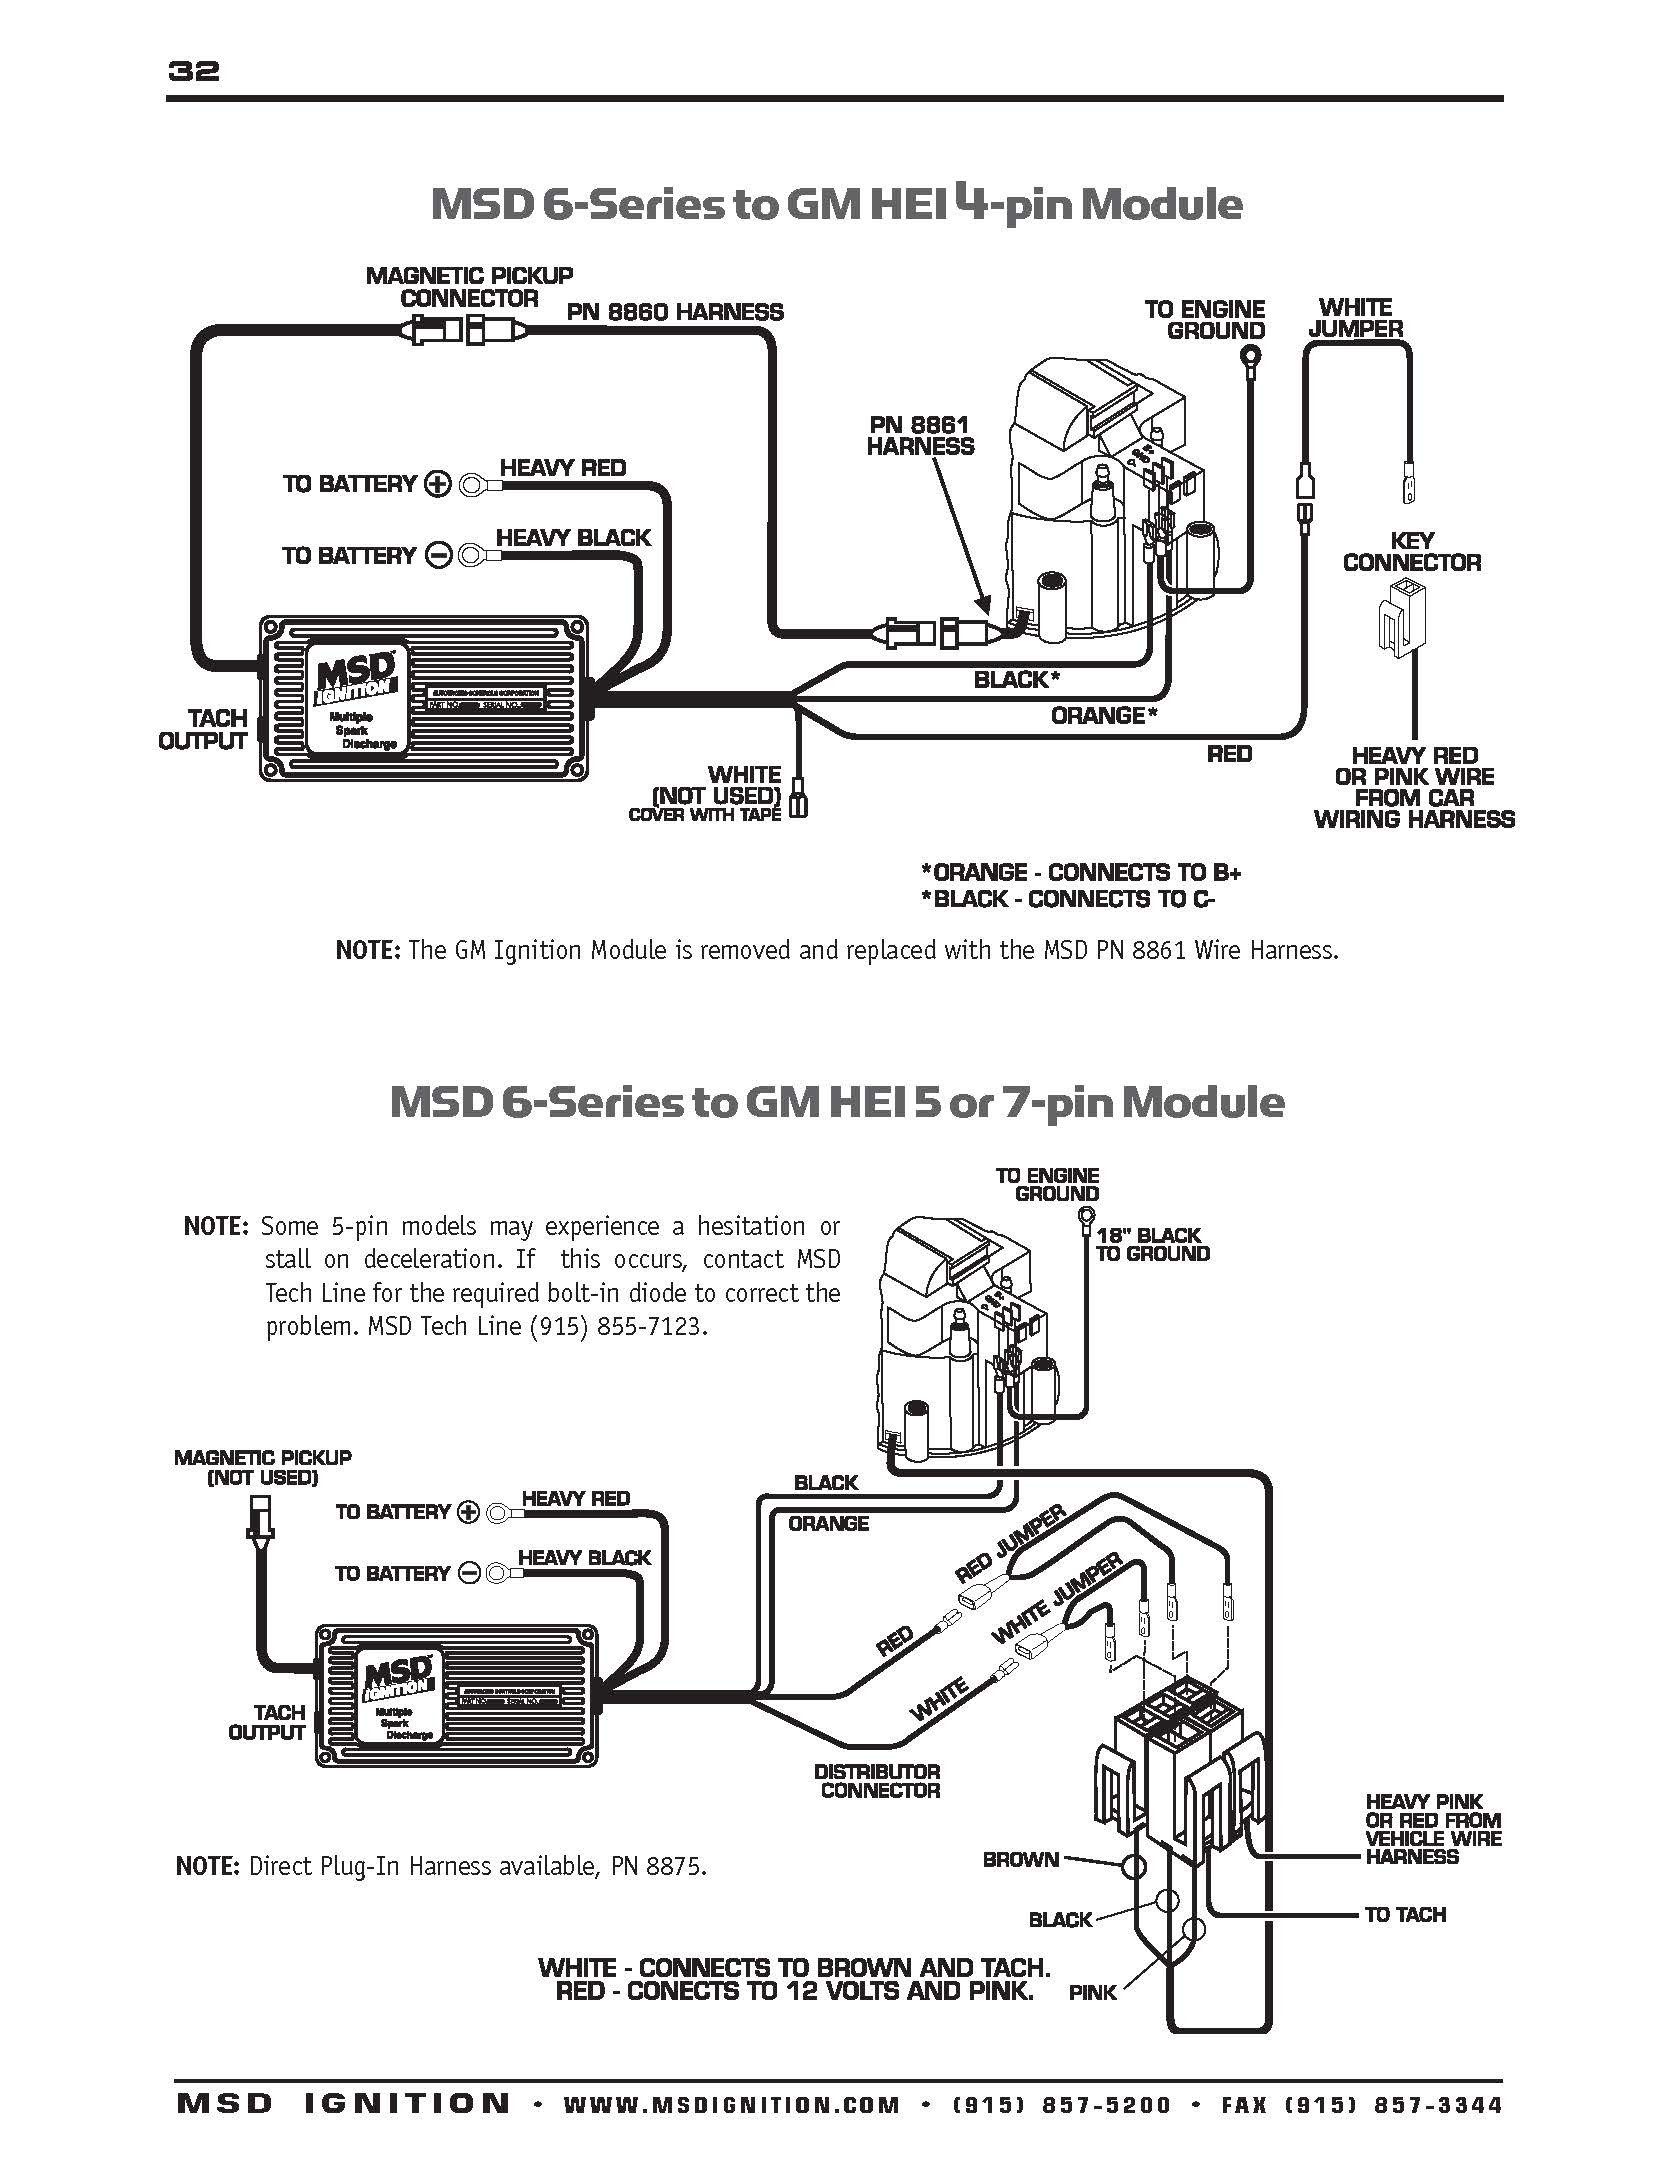 Msd 6al Wiring Diagram Chevy - Msd 6al to Hei Wiring Diagram at A 6al Box 10m